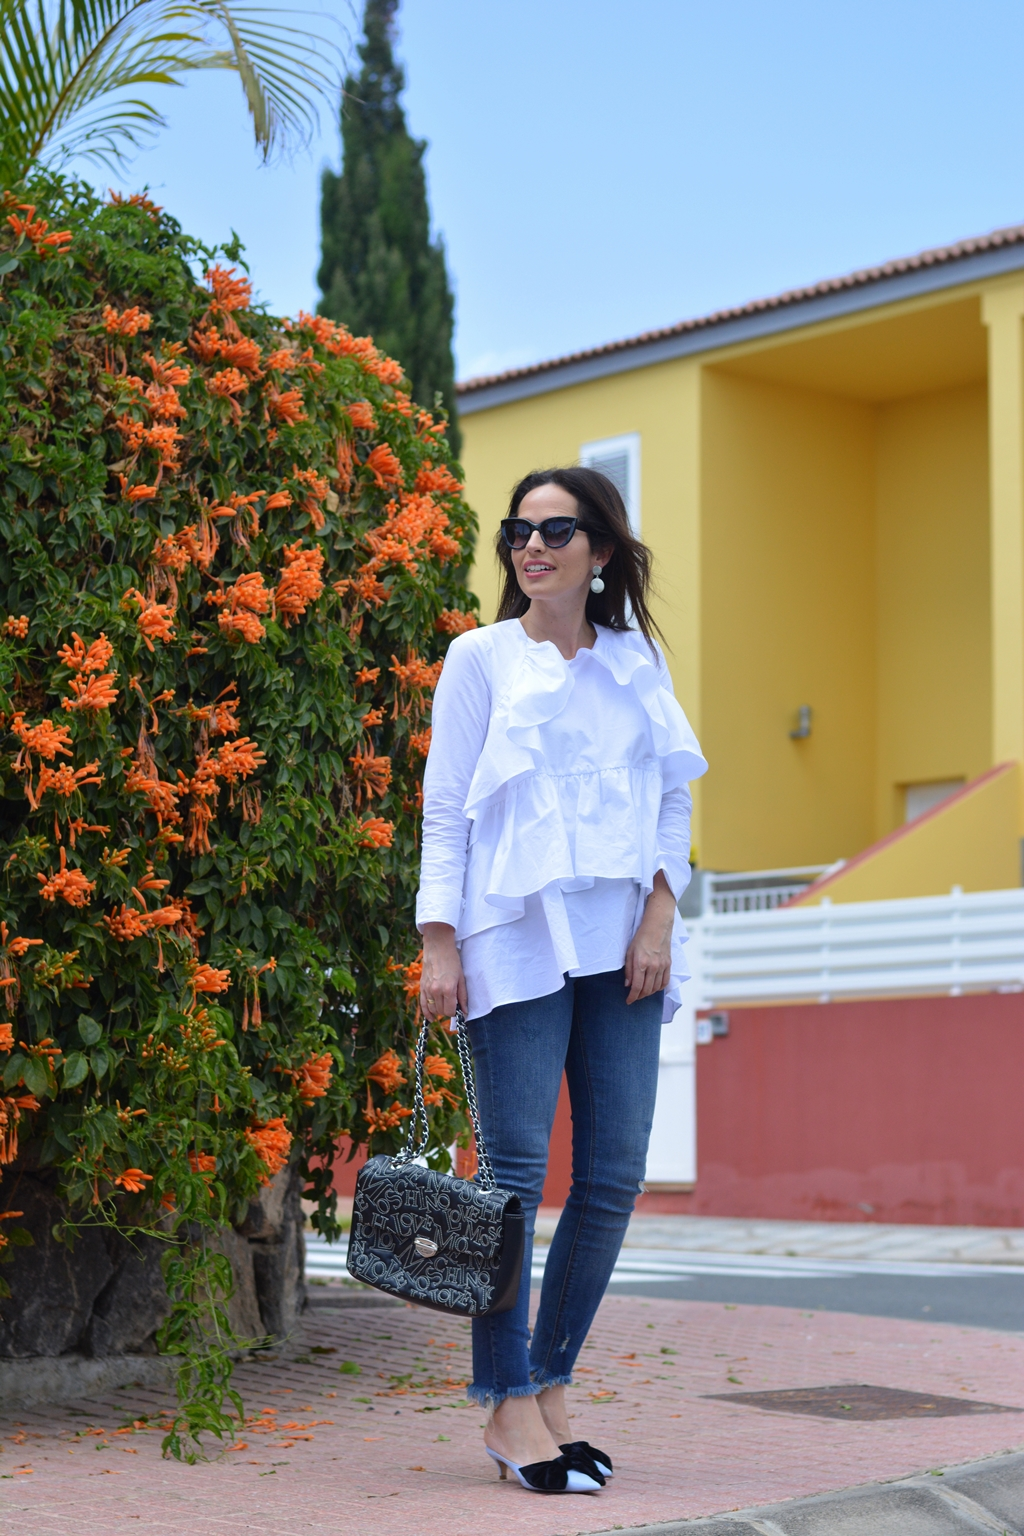 zara-frilled-shirt-and-mules-streetstyle-look